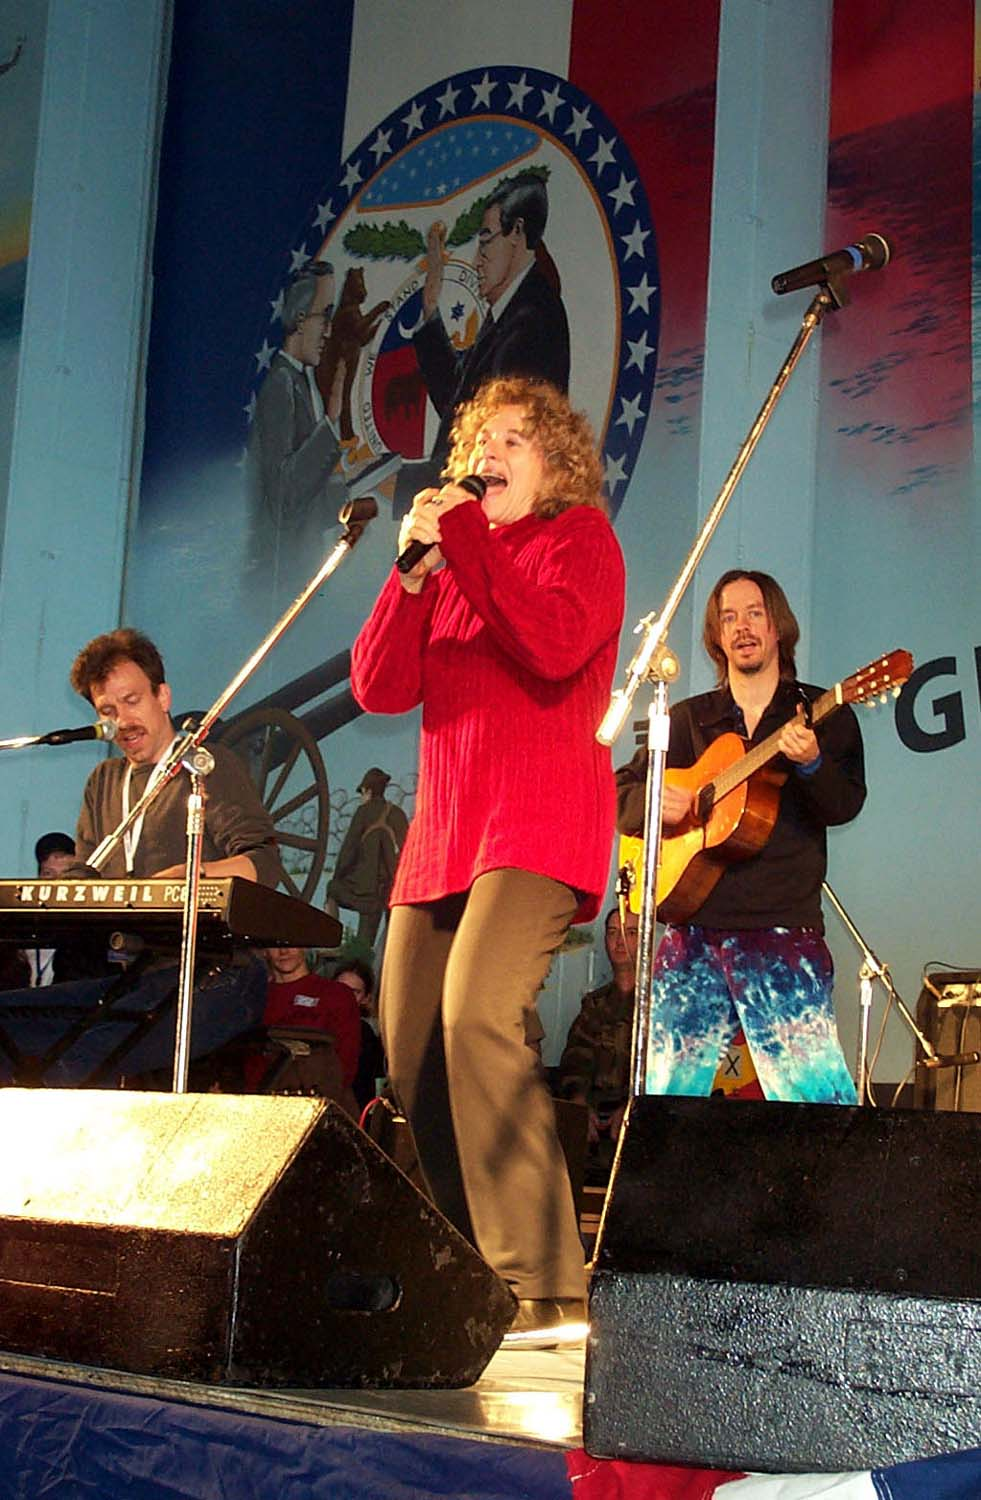 Click photo to download. Caption: Carole King, accompanied by Jon Carroll on the keyboard, and Arlen Schierbaum on the guitar, sings for about 1,500 sailors and Marines aboard the USS Harry S. Truman in the Mediterranean. Credit: Linda D. Kozaryn.